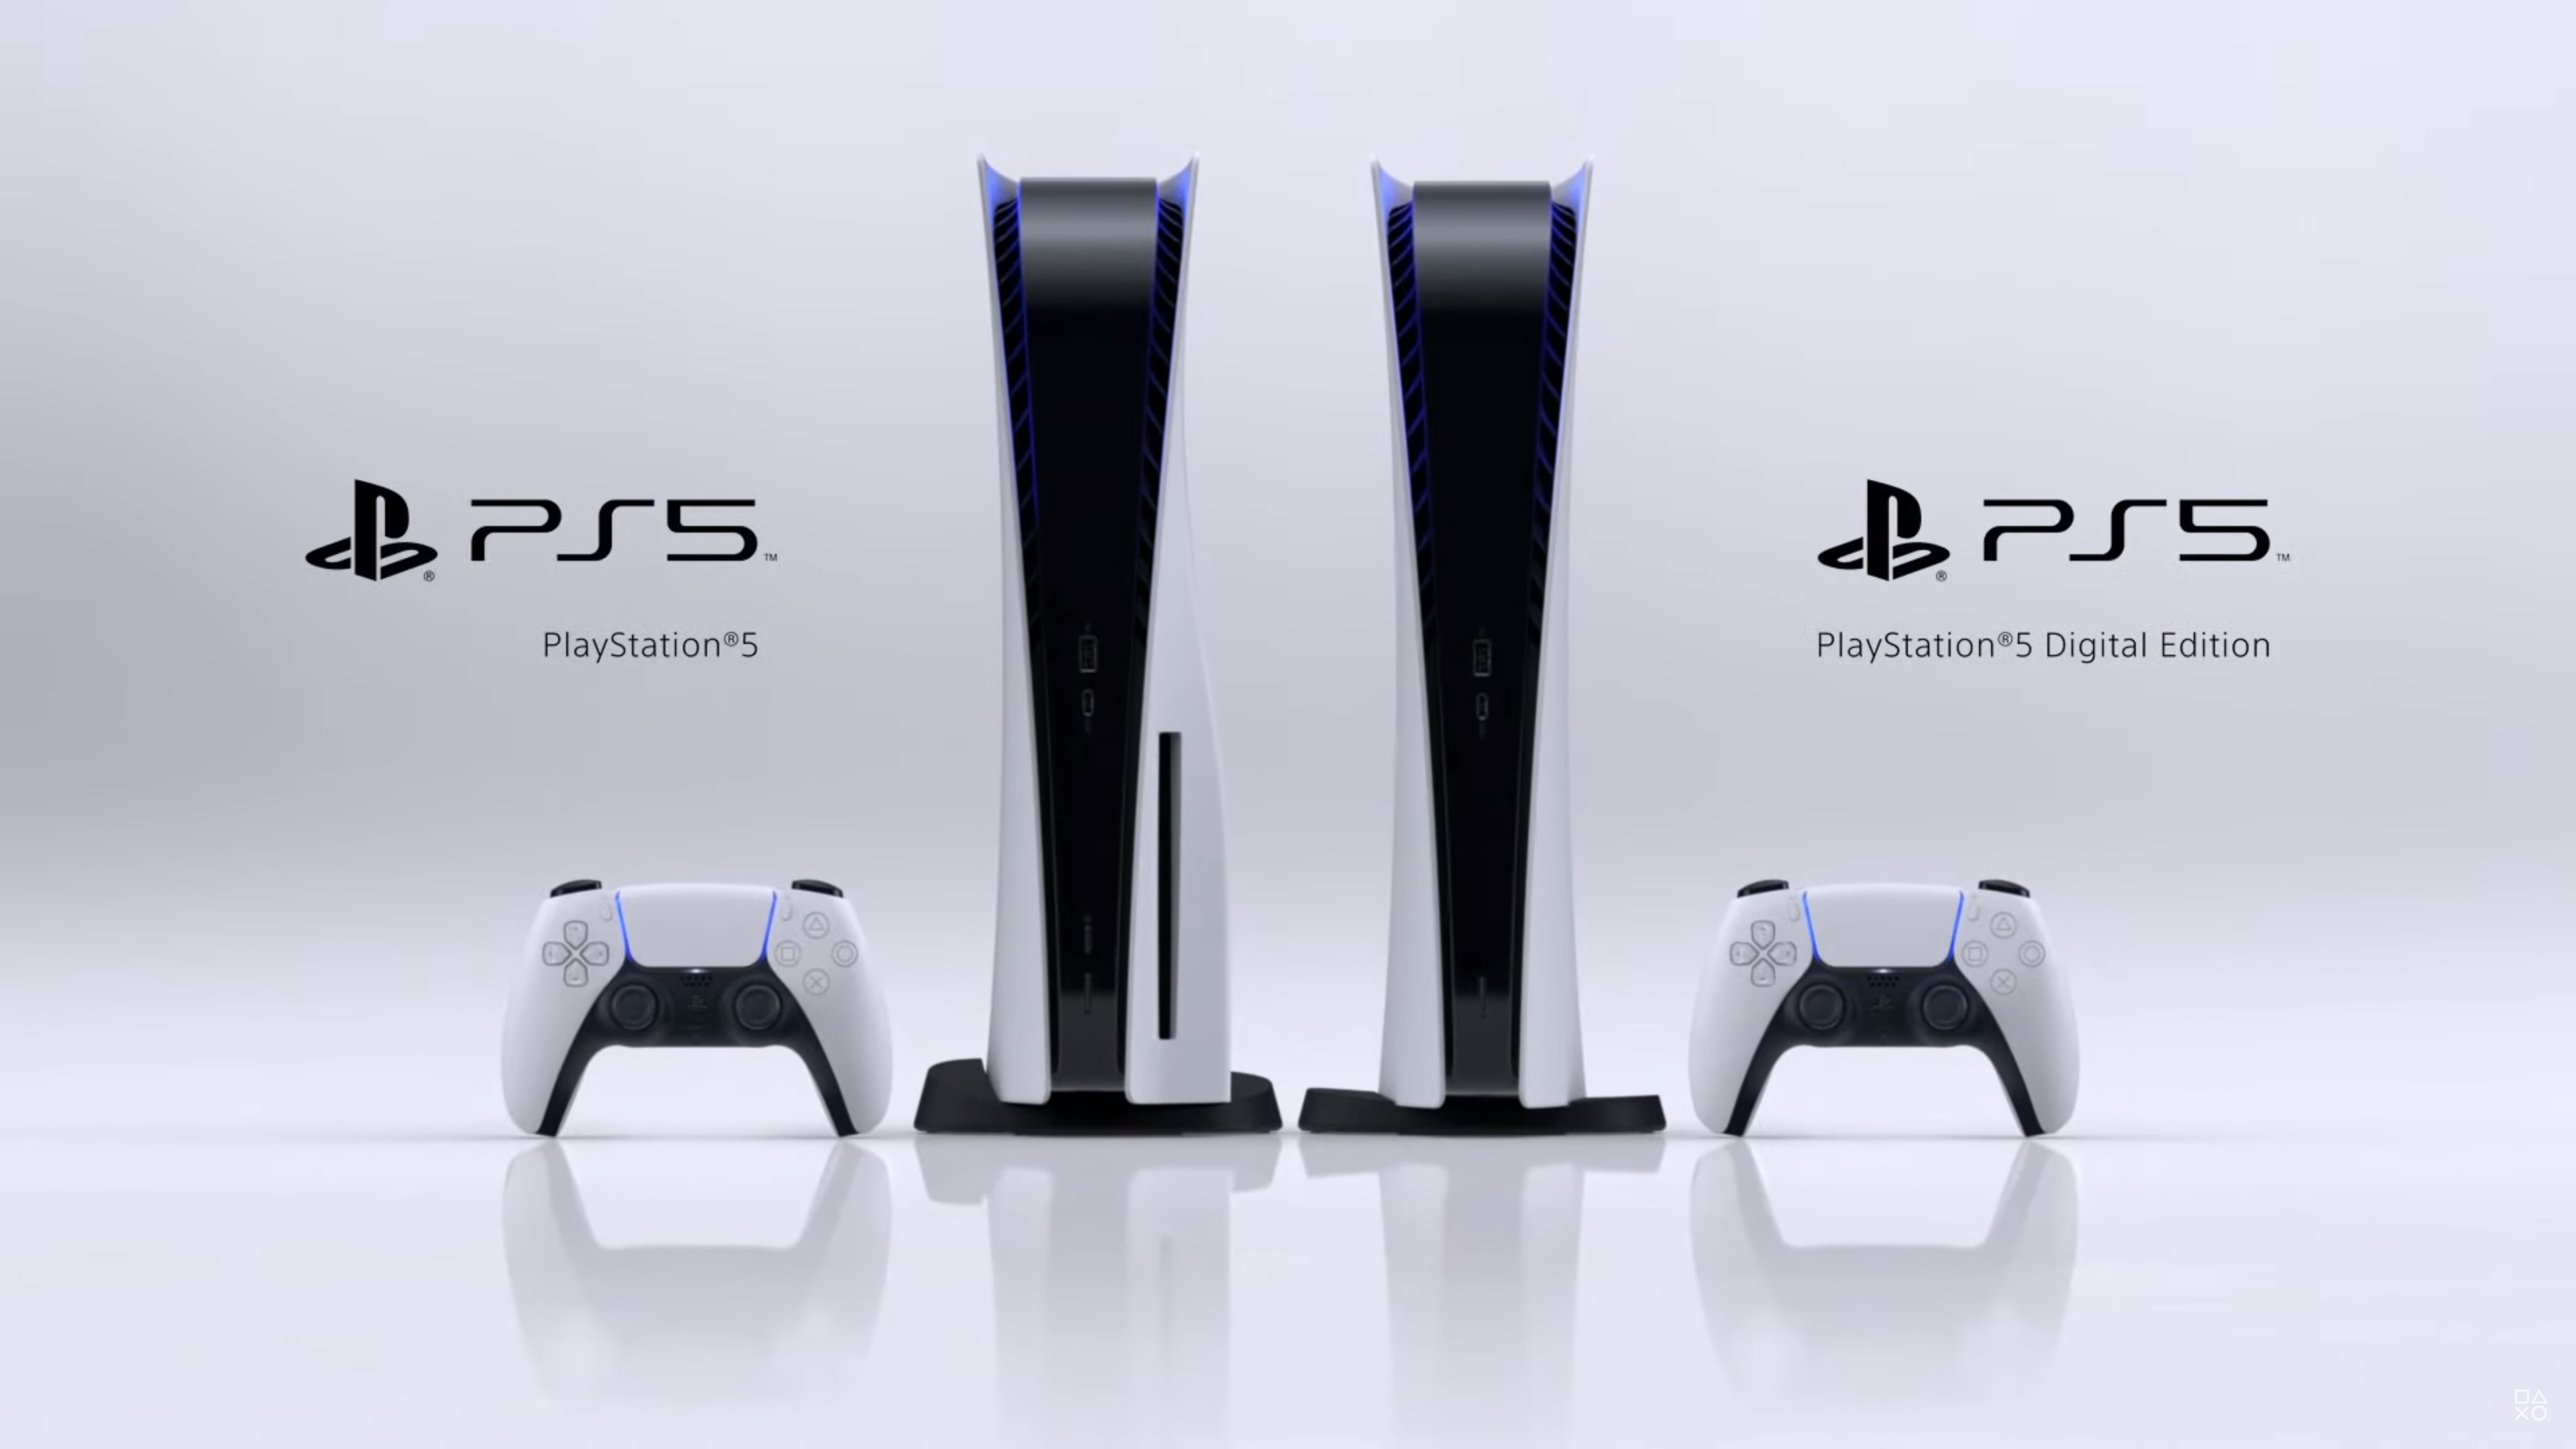 This Is What The Ps5 Looks Like Techradar